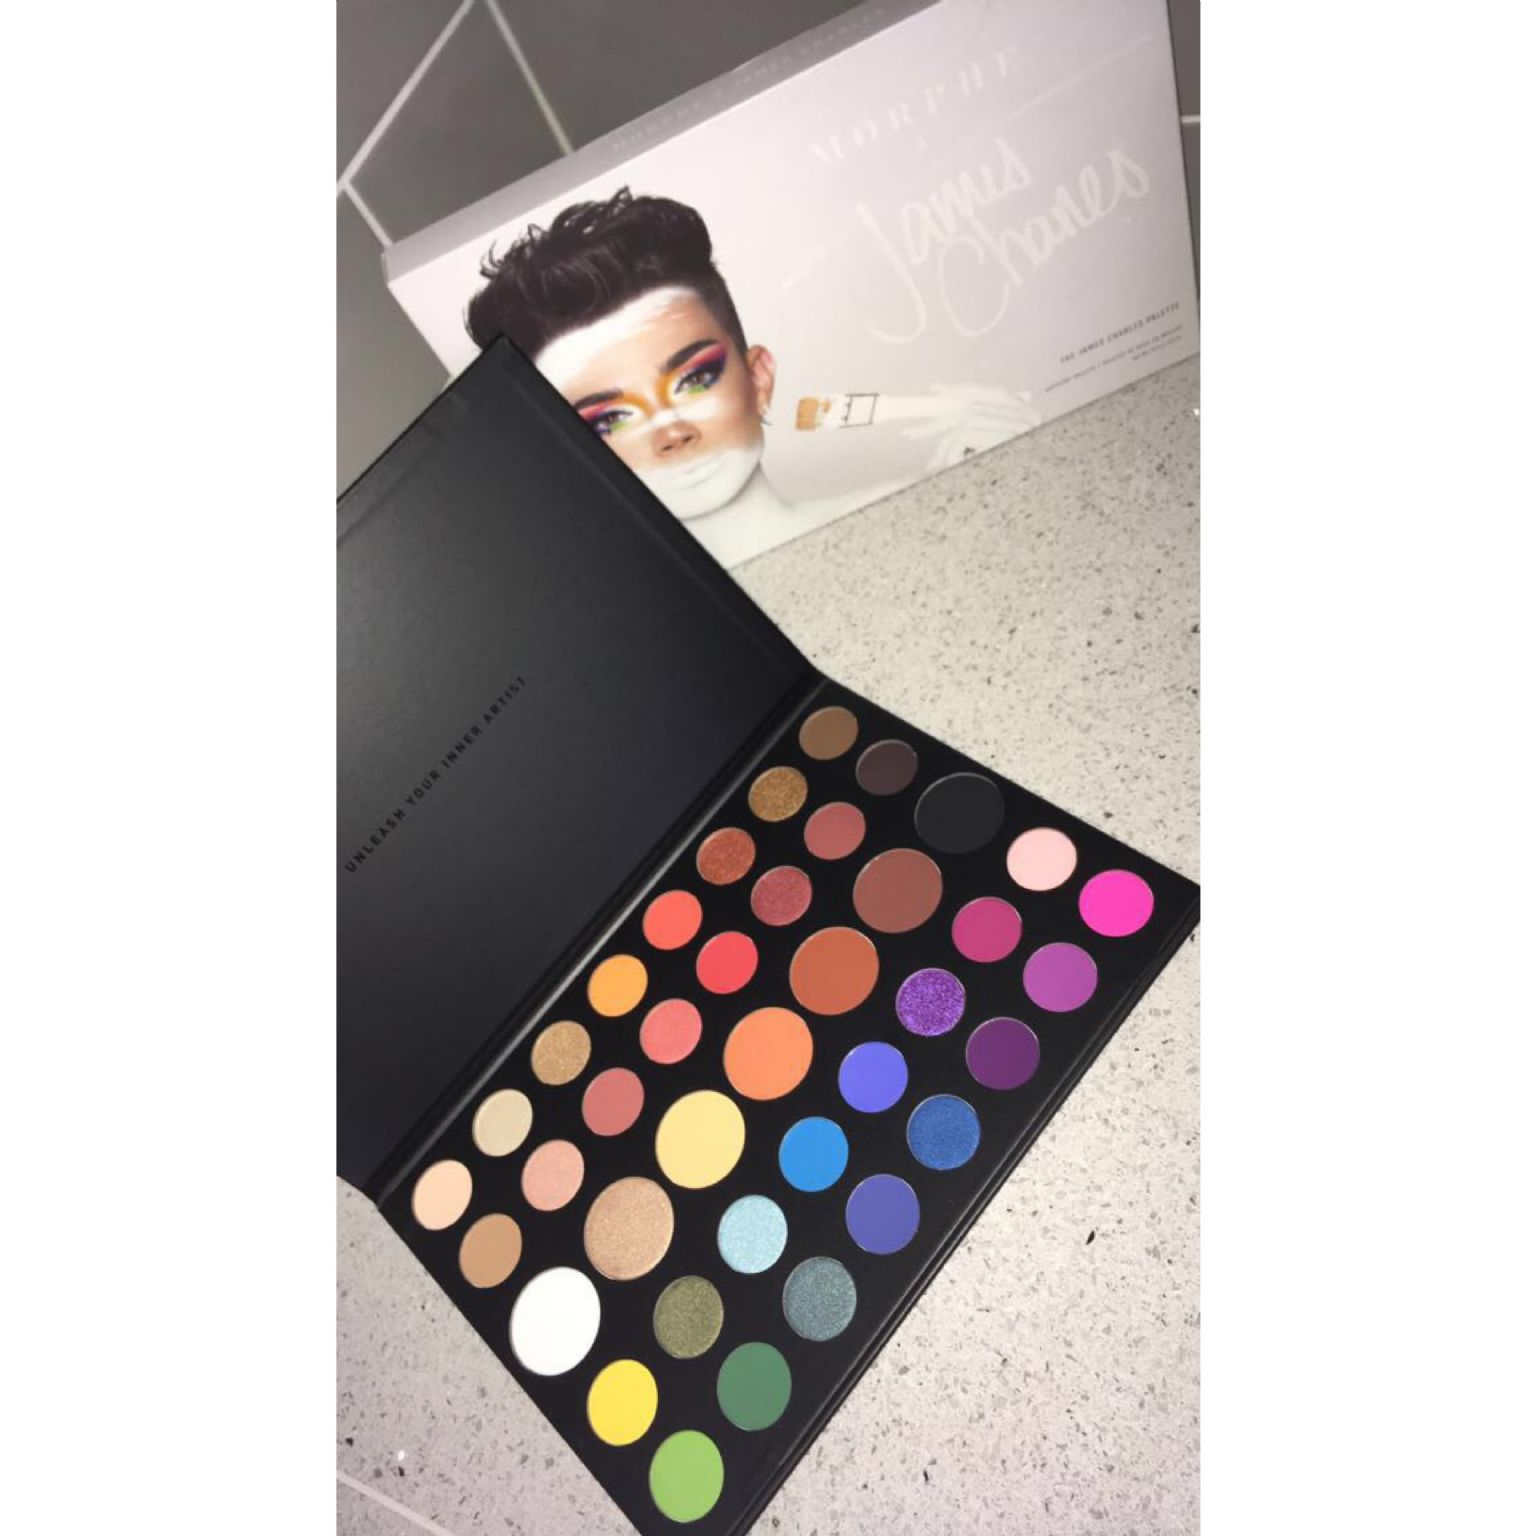 Morphe James Charles X Morphe Unleash Your Inner Artist Palette Reviews Photos Ingredients Makeupalley View this post on instagram. morphe james charles x morphe unleash your inner artist palette